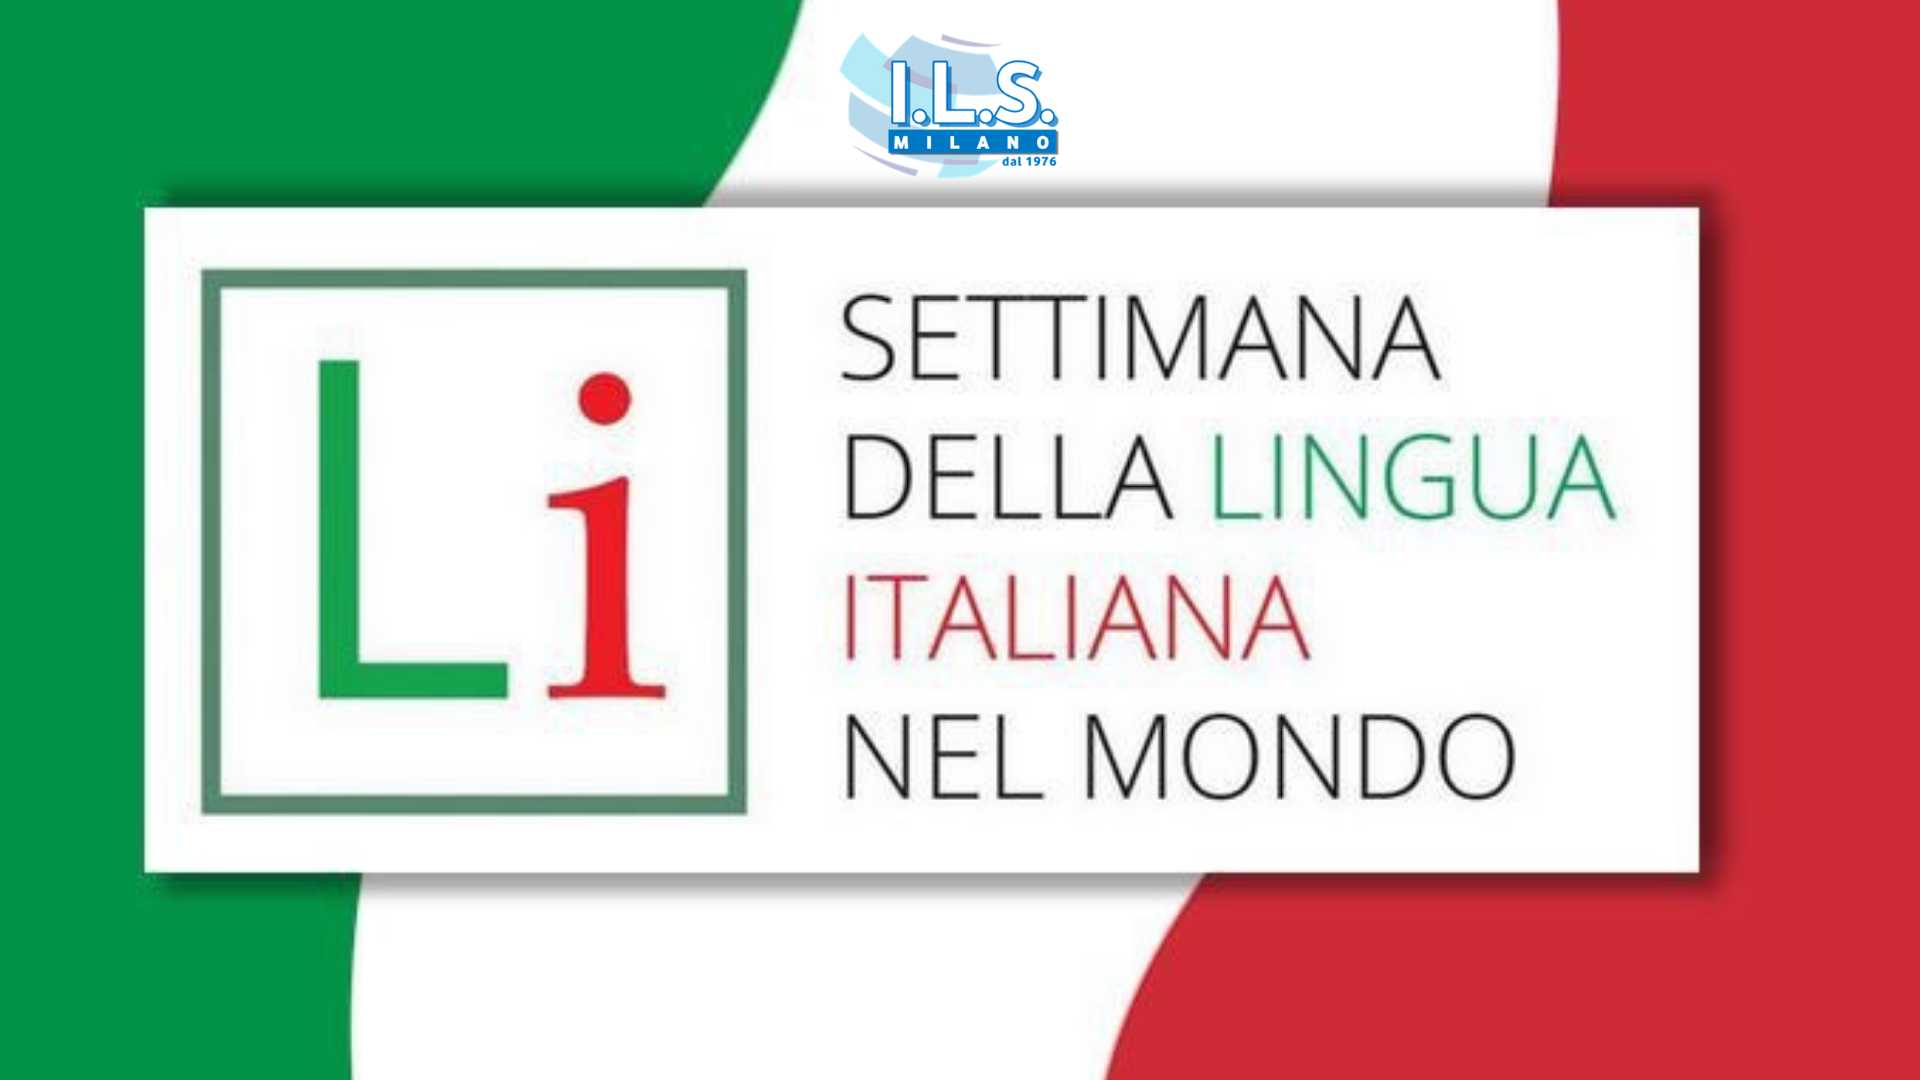 Italian Language Week from October 15th to 21st